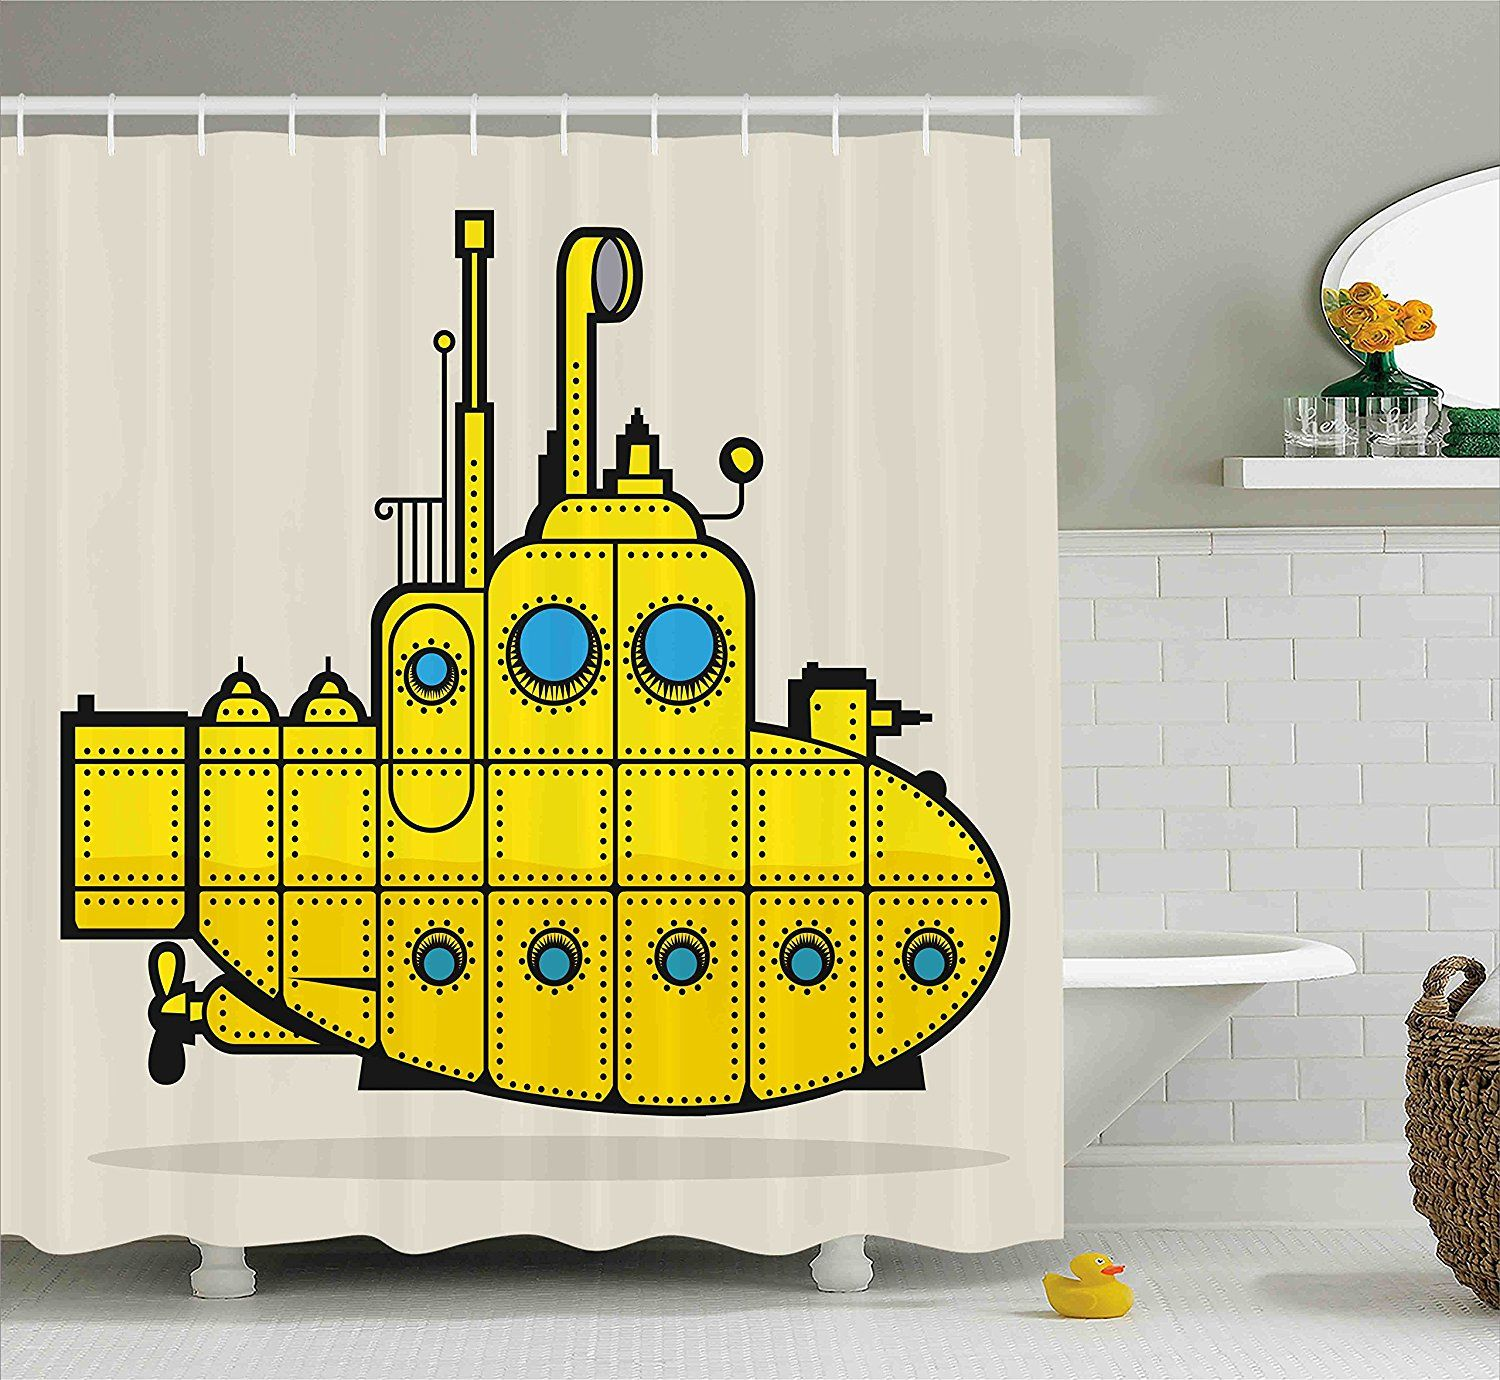 Beatles Yellow Submarine Shower Curtain For The Bathroom Decor Yellow Shower Curtains Shower Curtain Curtains